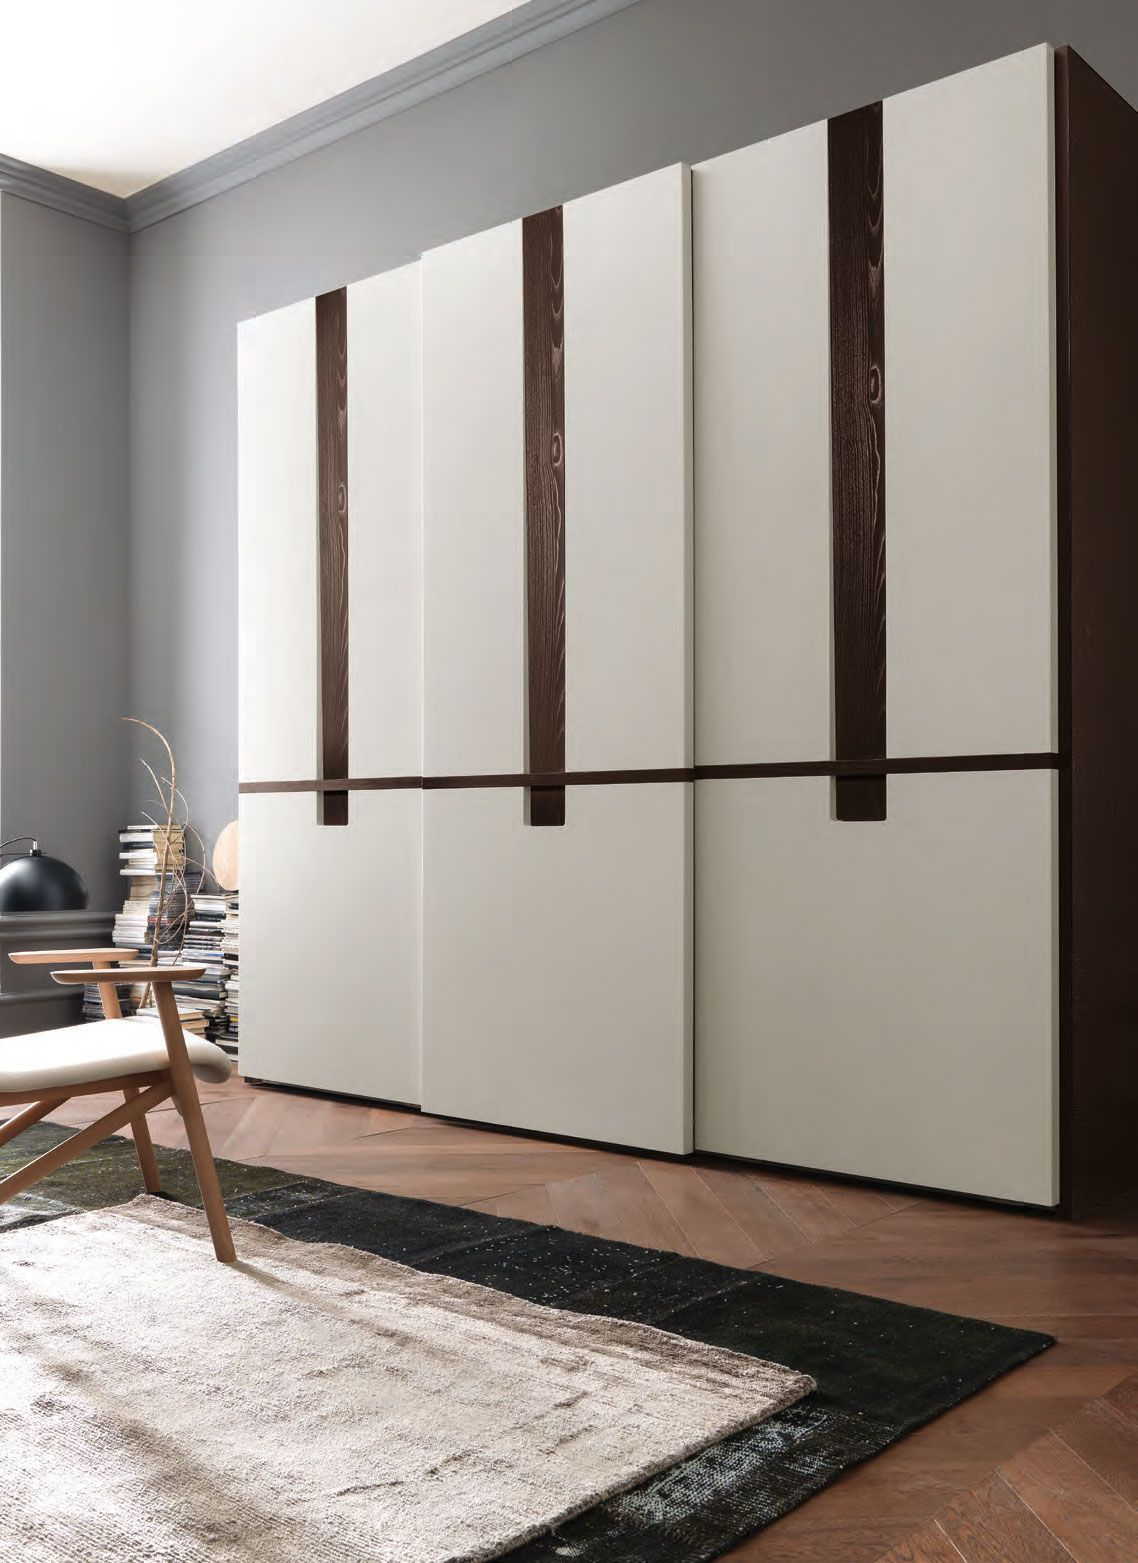 35 modern wardrobe furniture designs wardrobe furniture modern wardrobe and comebacks for Bedroom cupboard designs images